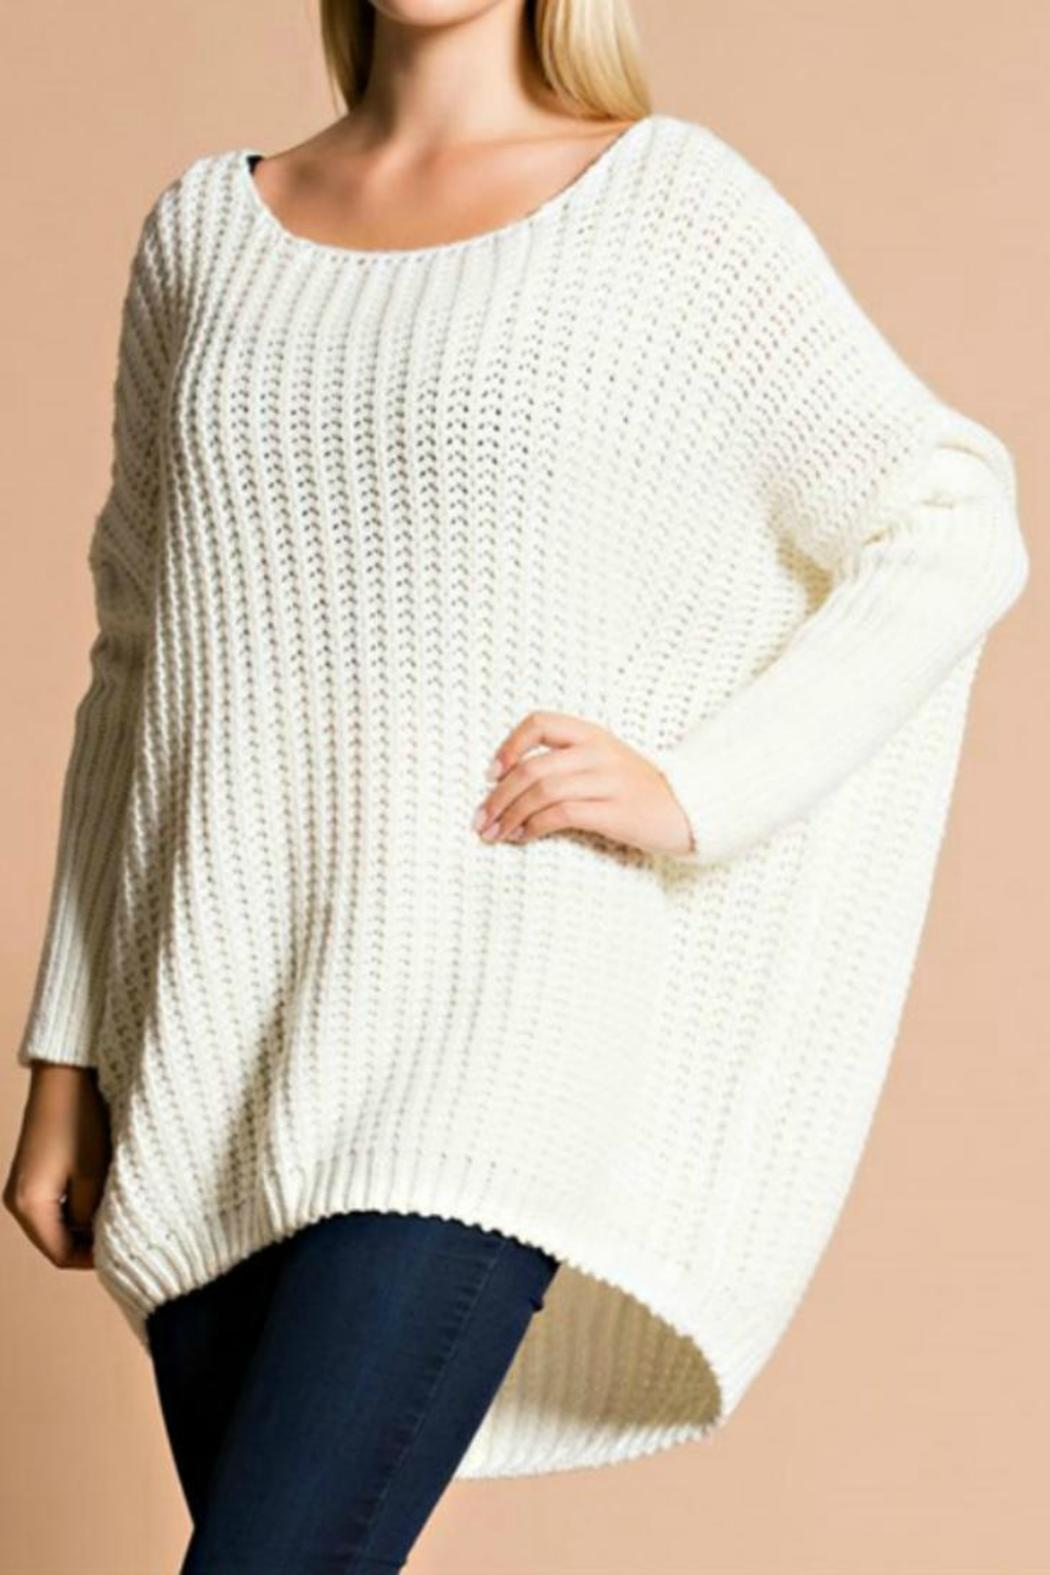 Oversized Tunic Sweater from Kentucky by CocaBelle Boutique ...